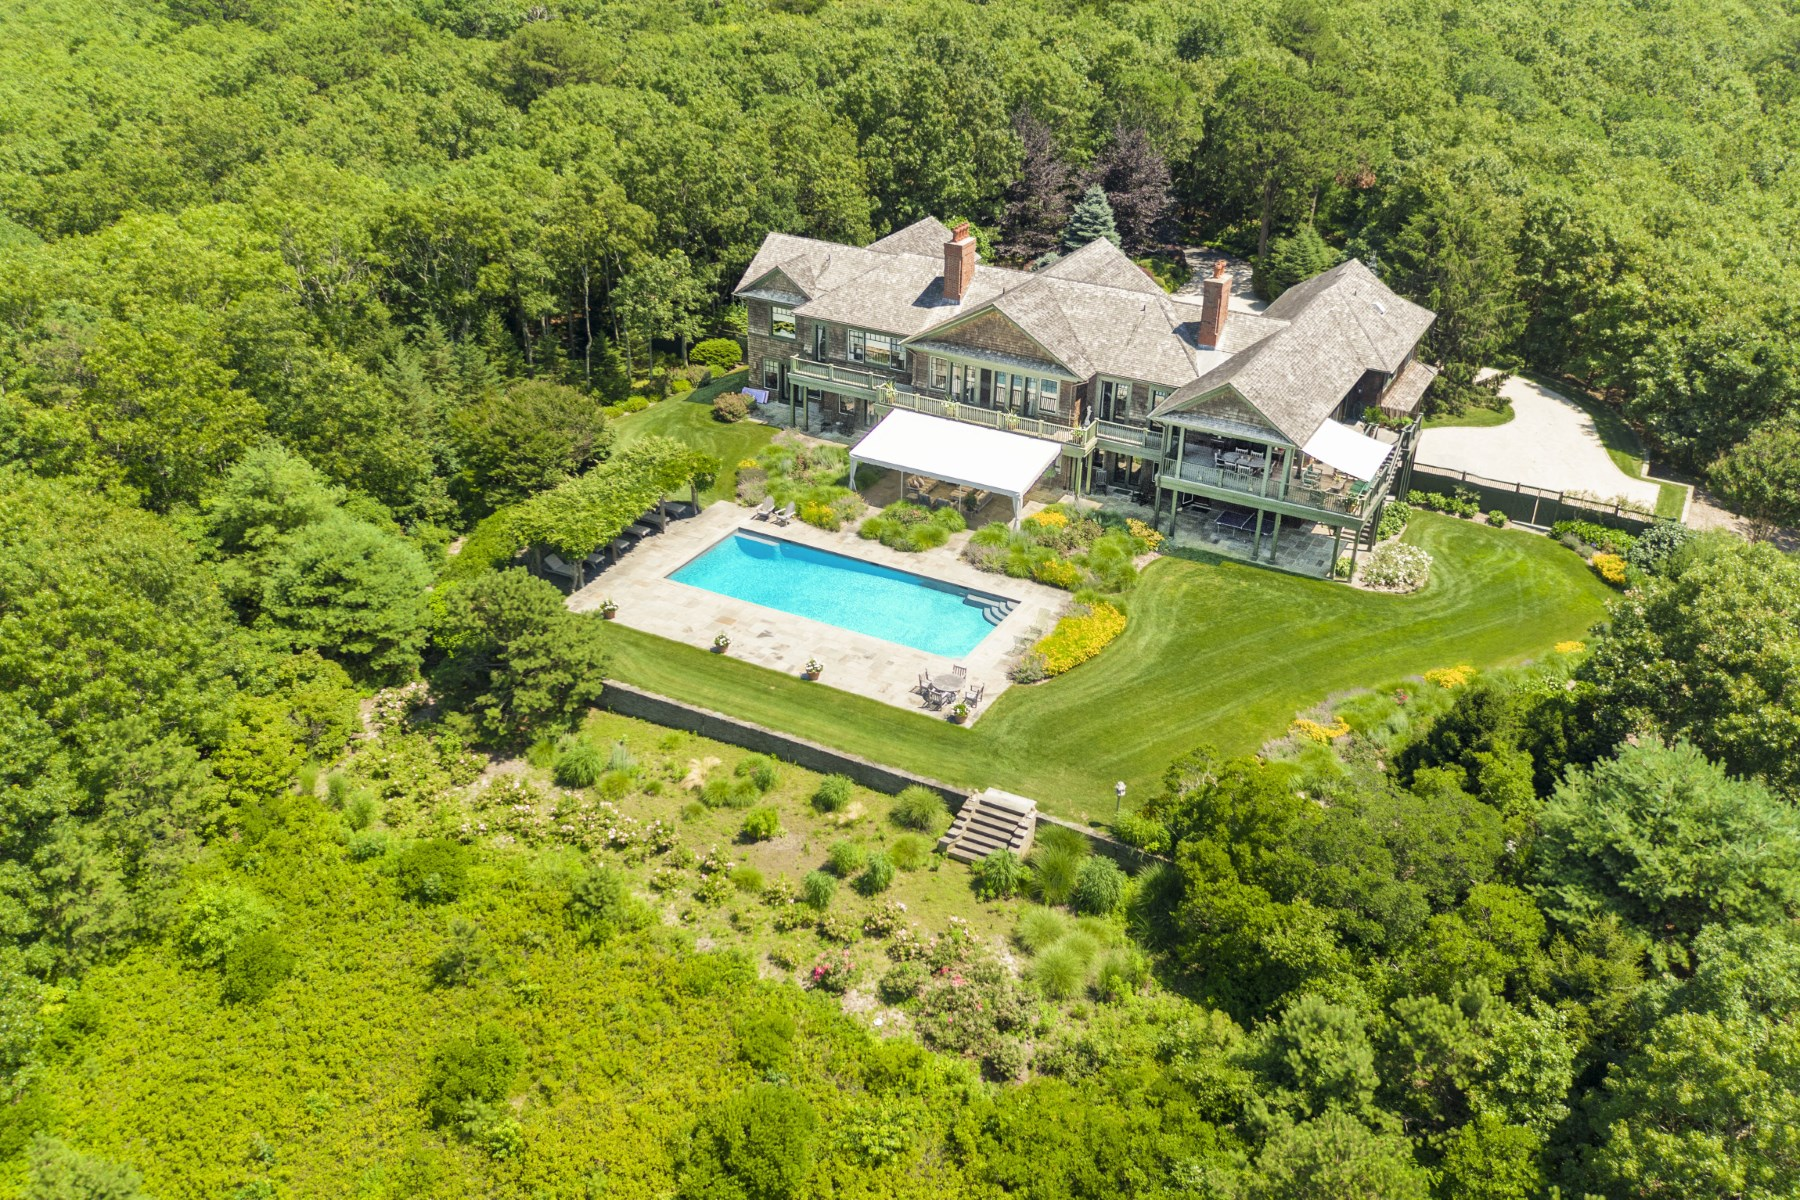 Maison unifamiliale pour l Vente à Magnificent Estate with Bay Views Water Mill, New York, 11976 États-Unis